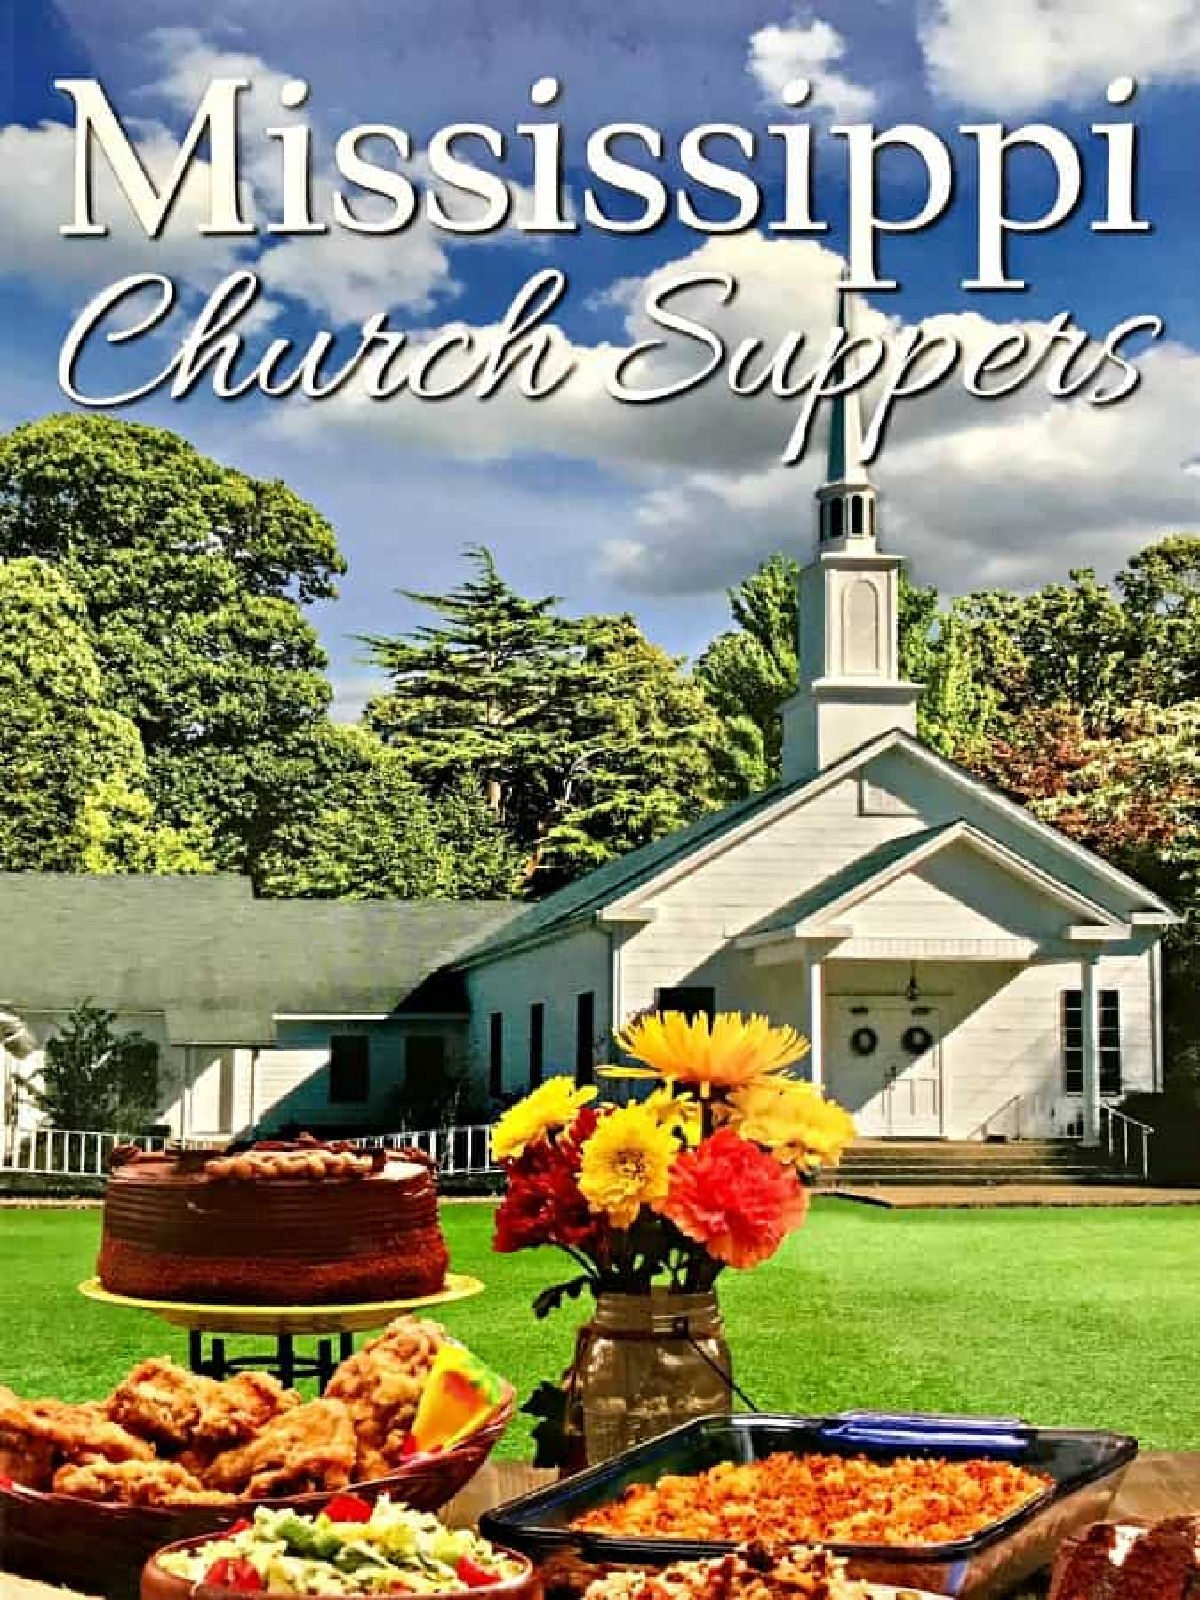 Mississippi Church Suppers cookbook.